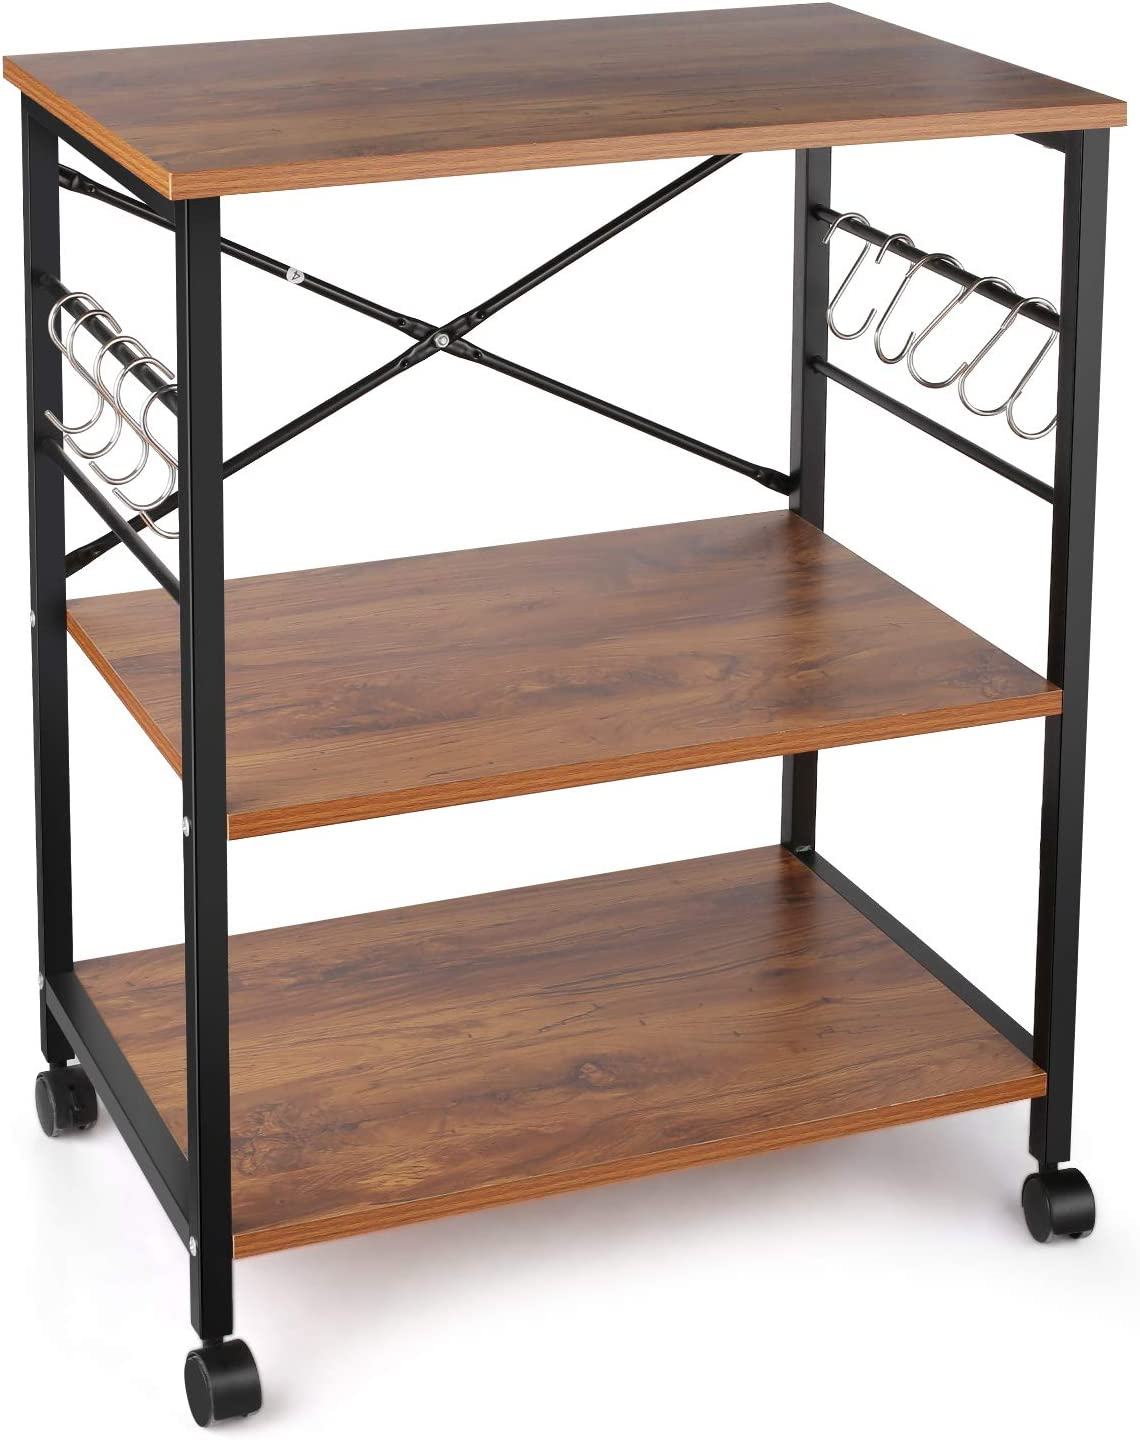 BATHWA Industrial Kitchen Baker's Rack, 3-Tier Microwave Oven Stand Storage Cart with with Metal Frame and 10 Hooks (with Casters)